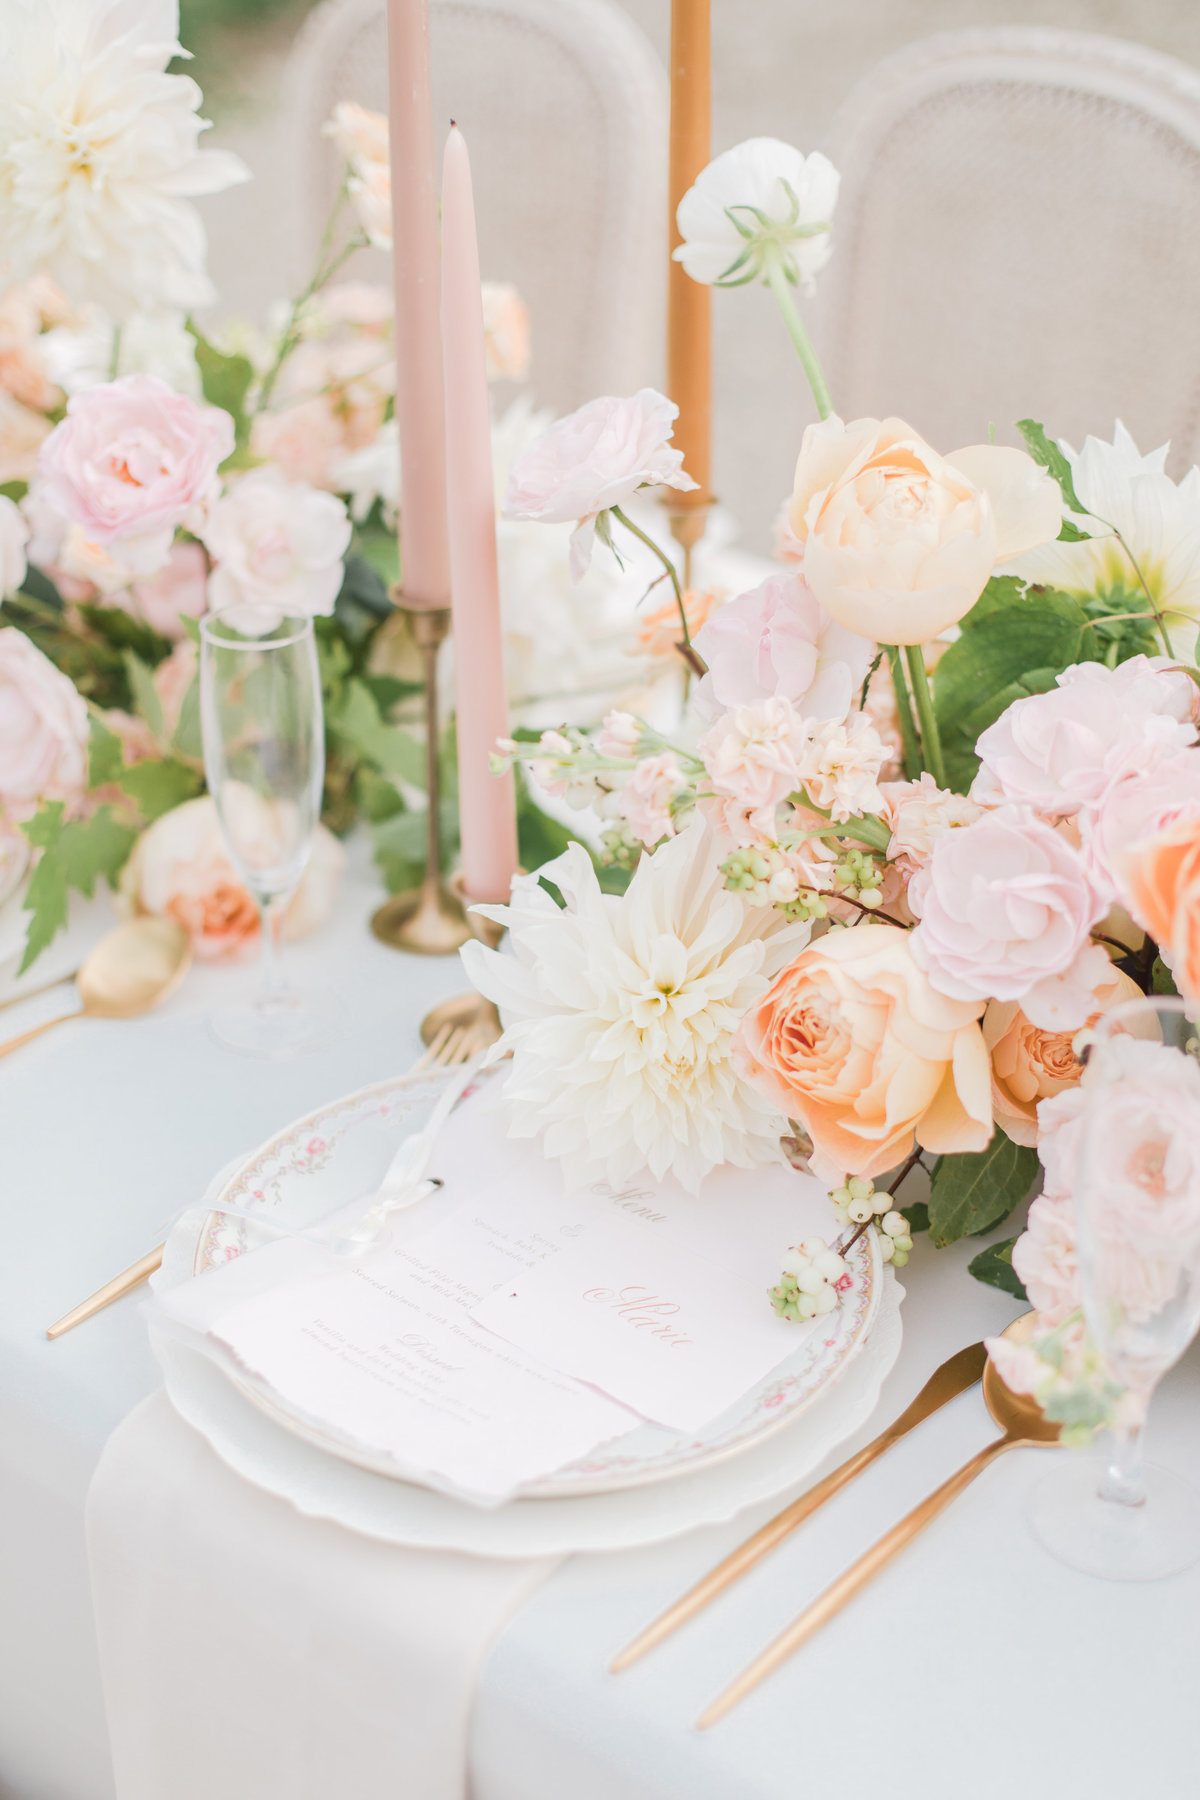 orange blush ivory and gold wedding tablescape at champagne france wedding by costola photography